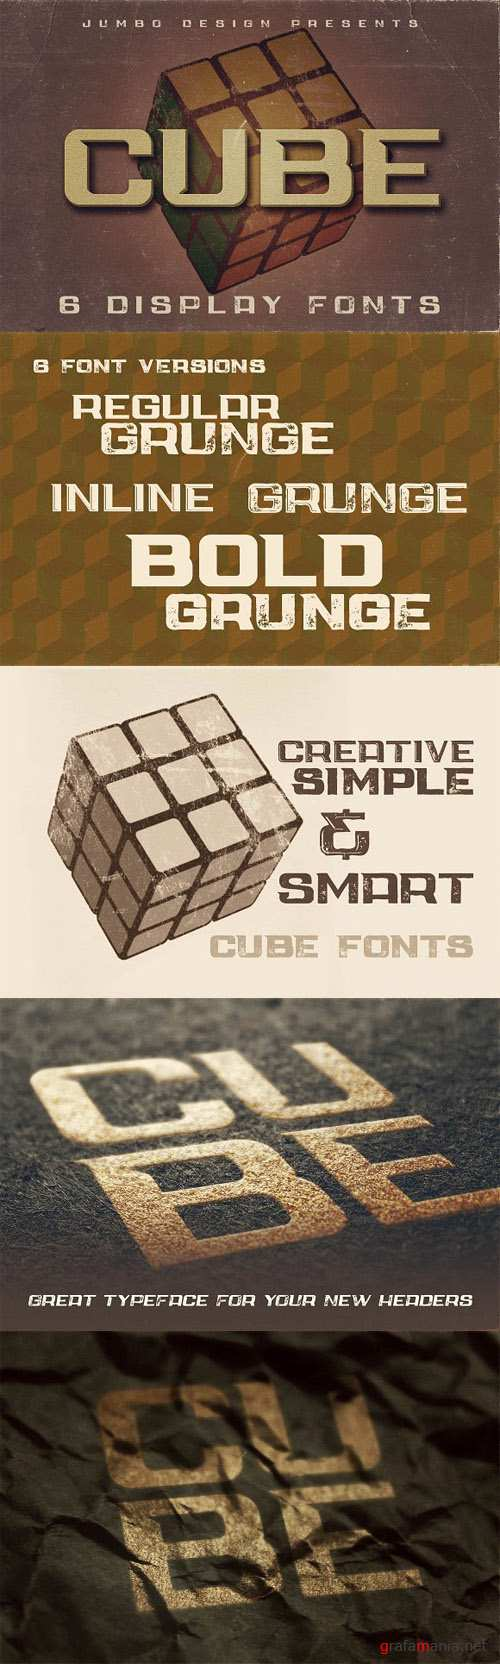 Cube - Display Font 1487176